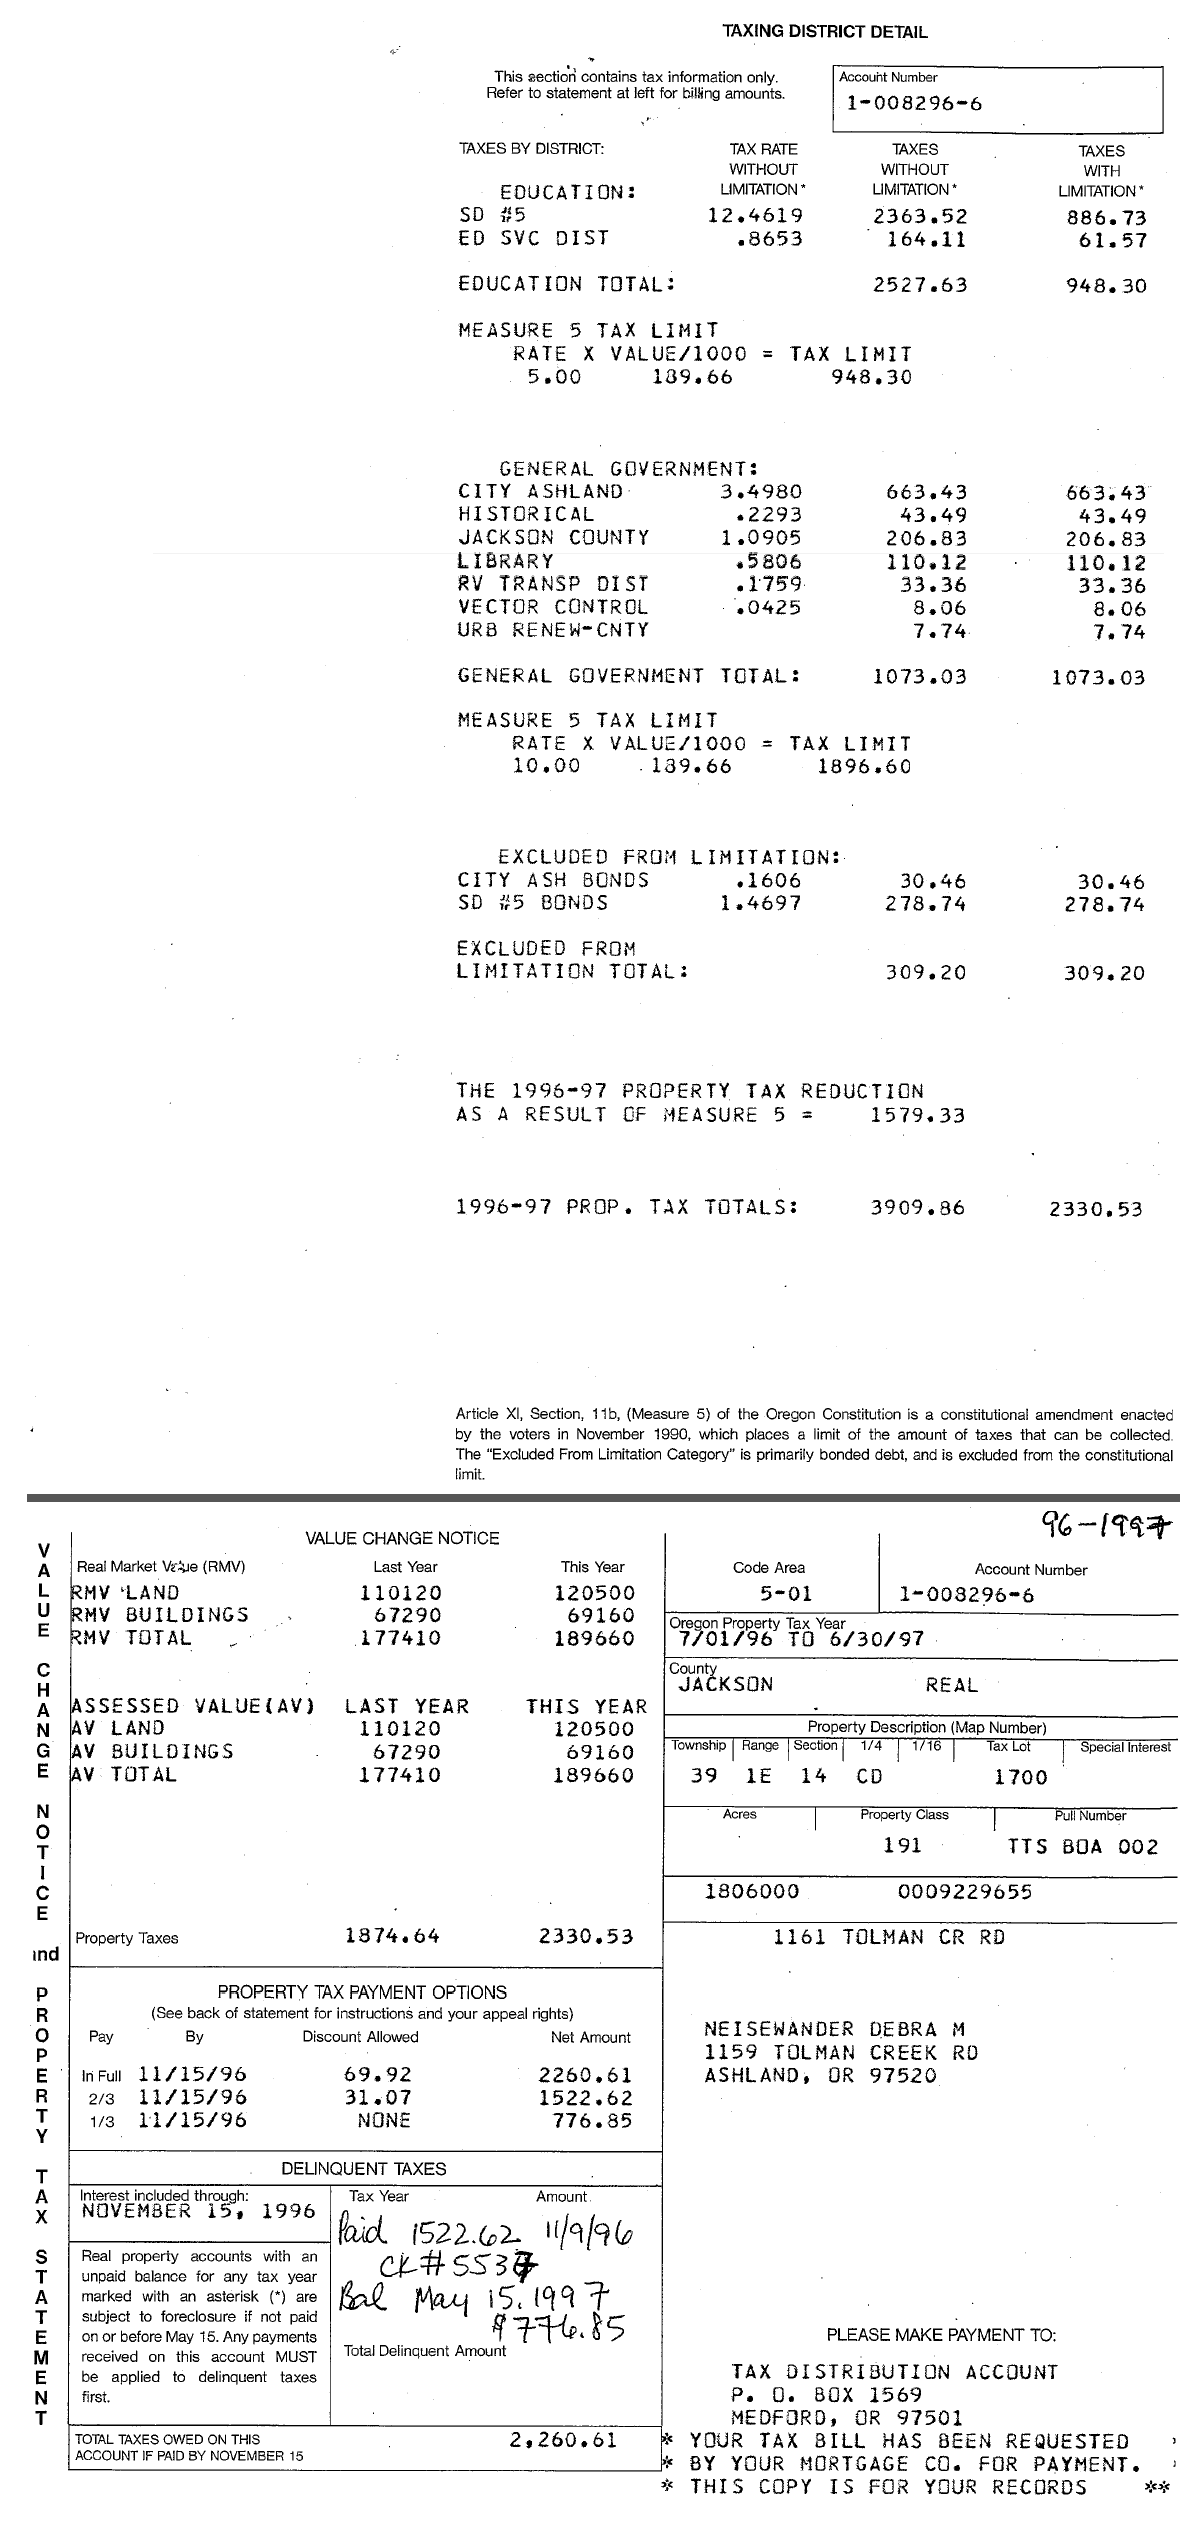 1996-97 Property Tax Statement